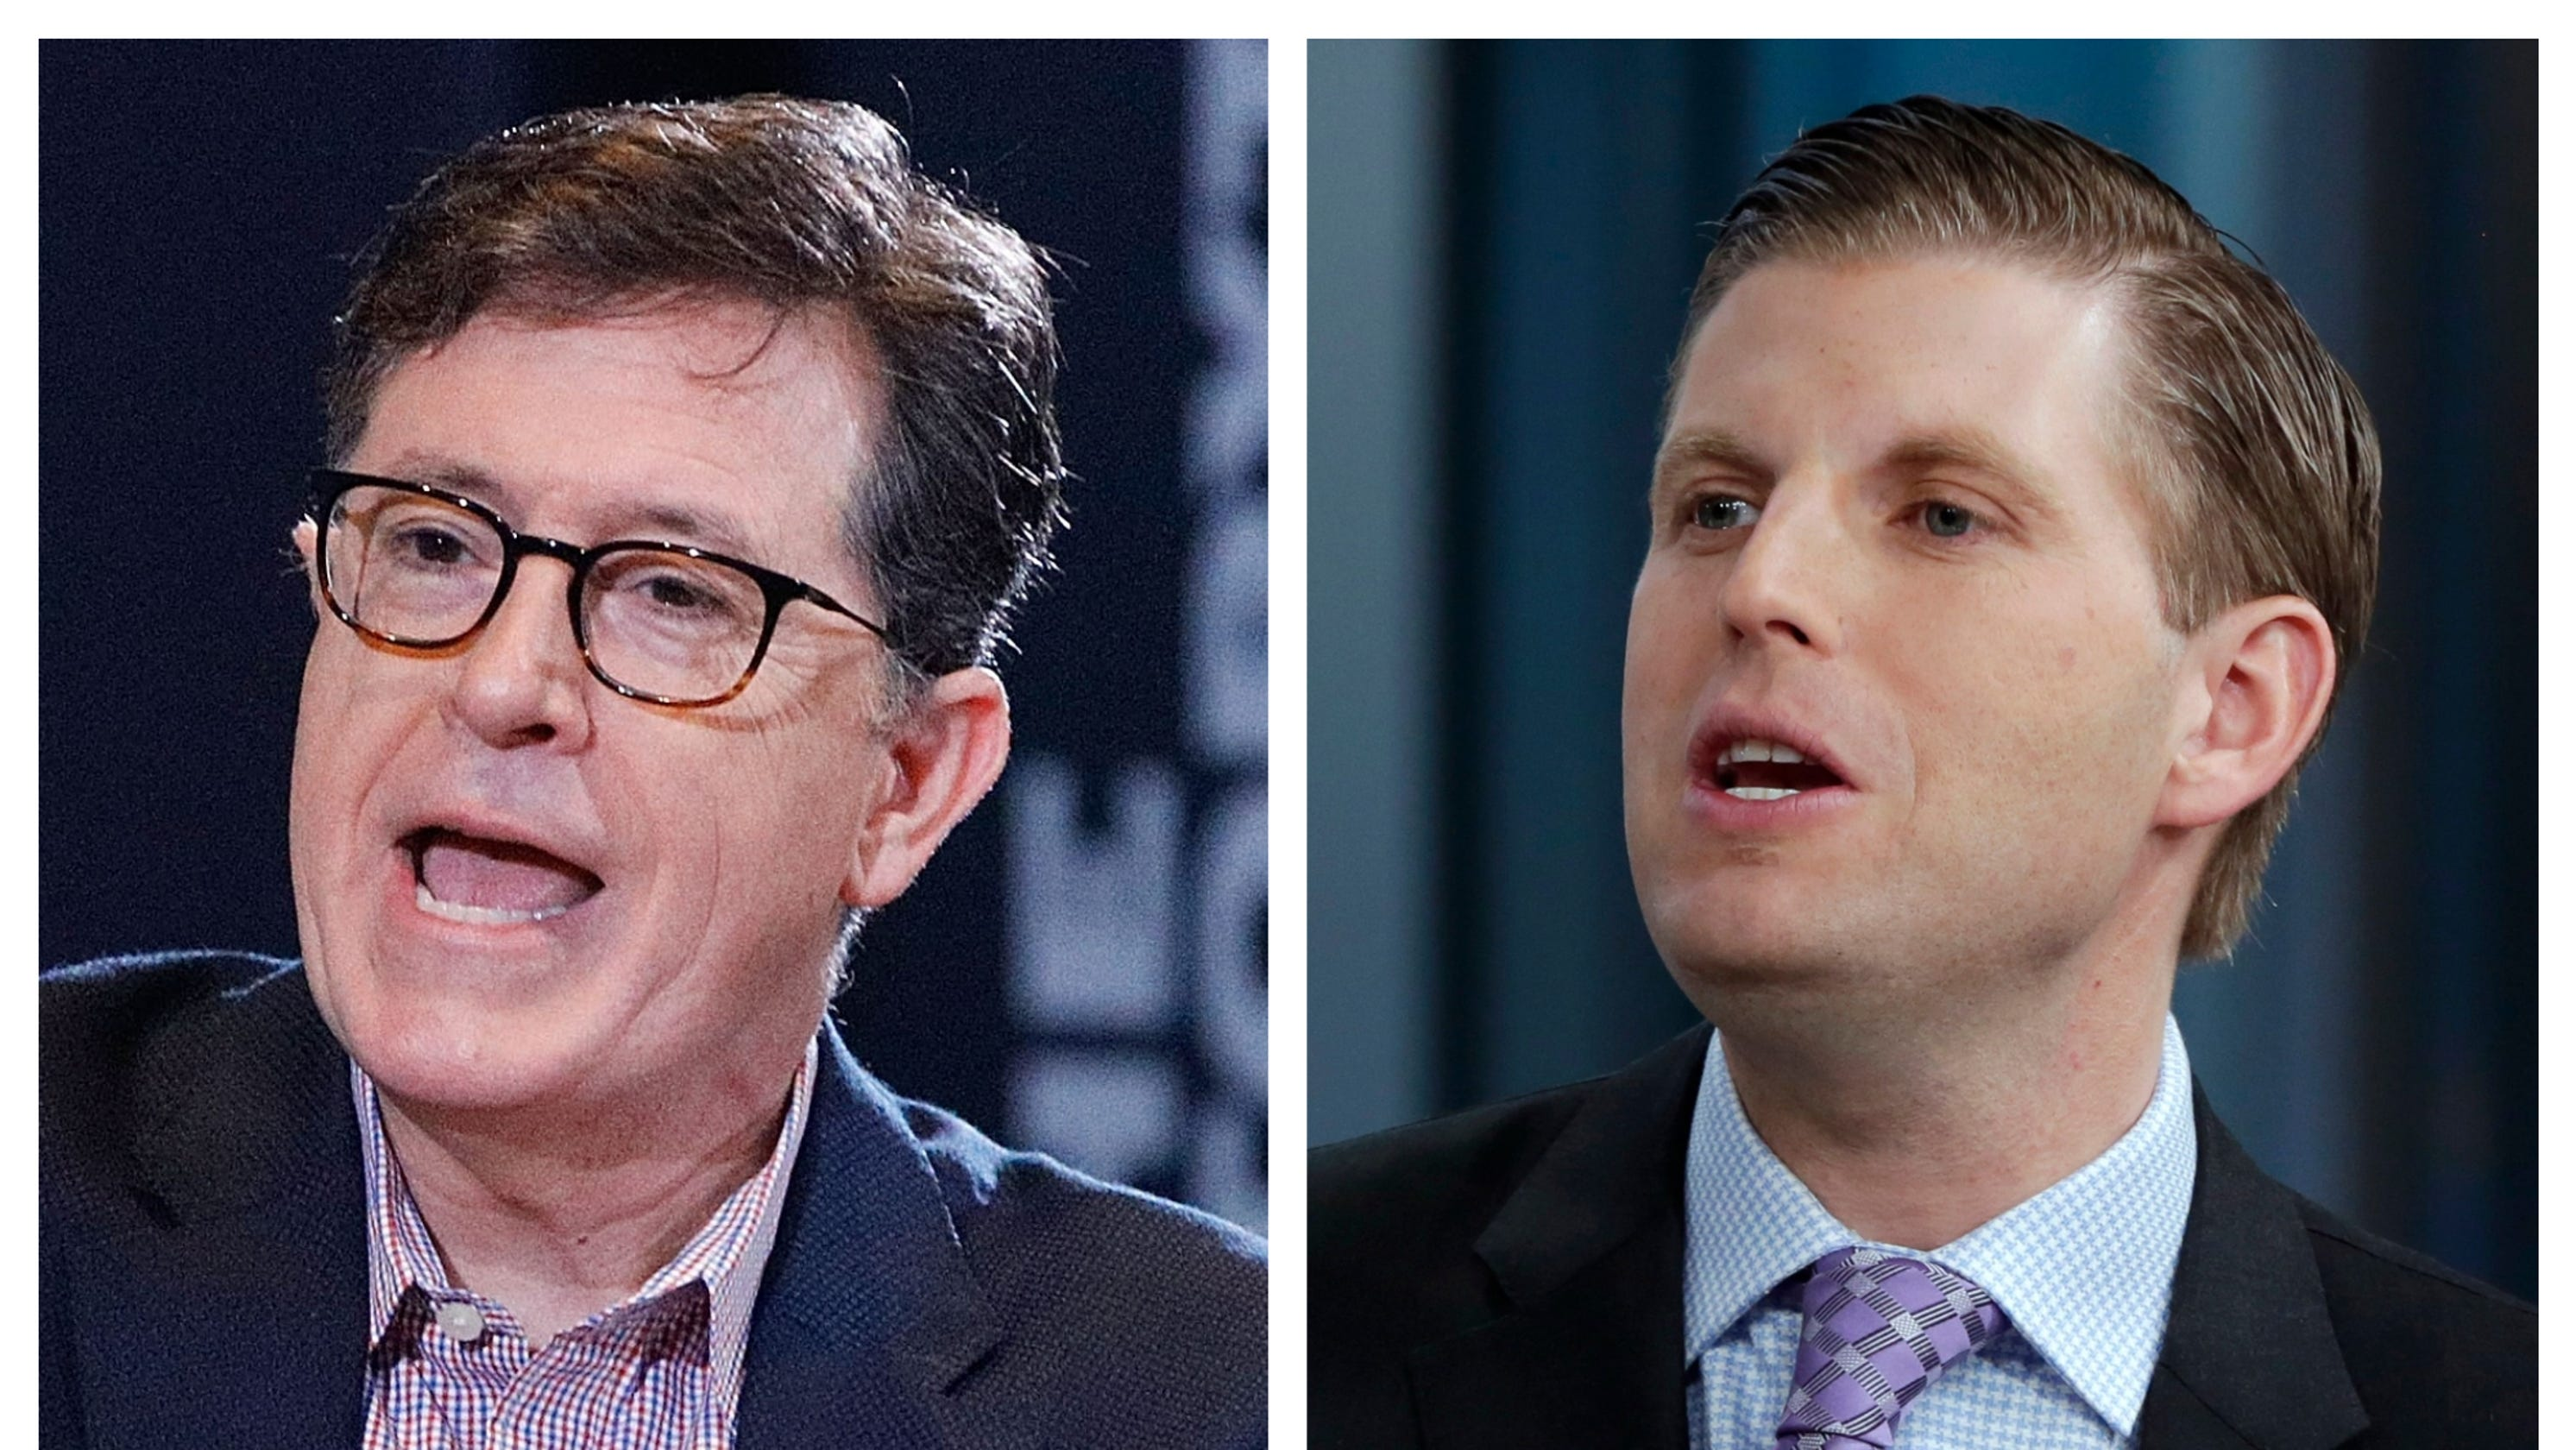 Stephen Colbert rips Eric Trump - and his appearance - in scathing 'Late Show' monologue